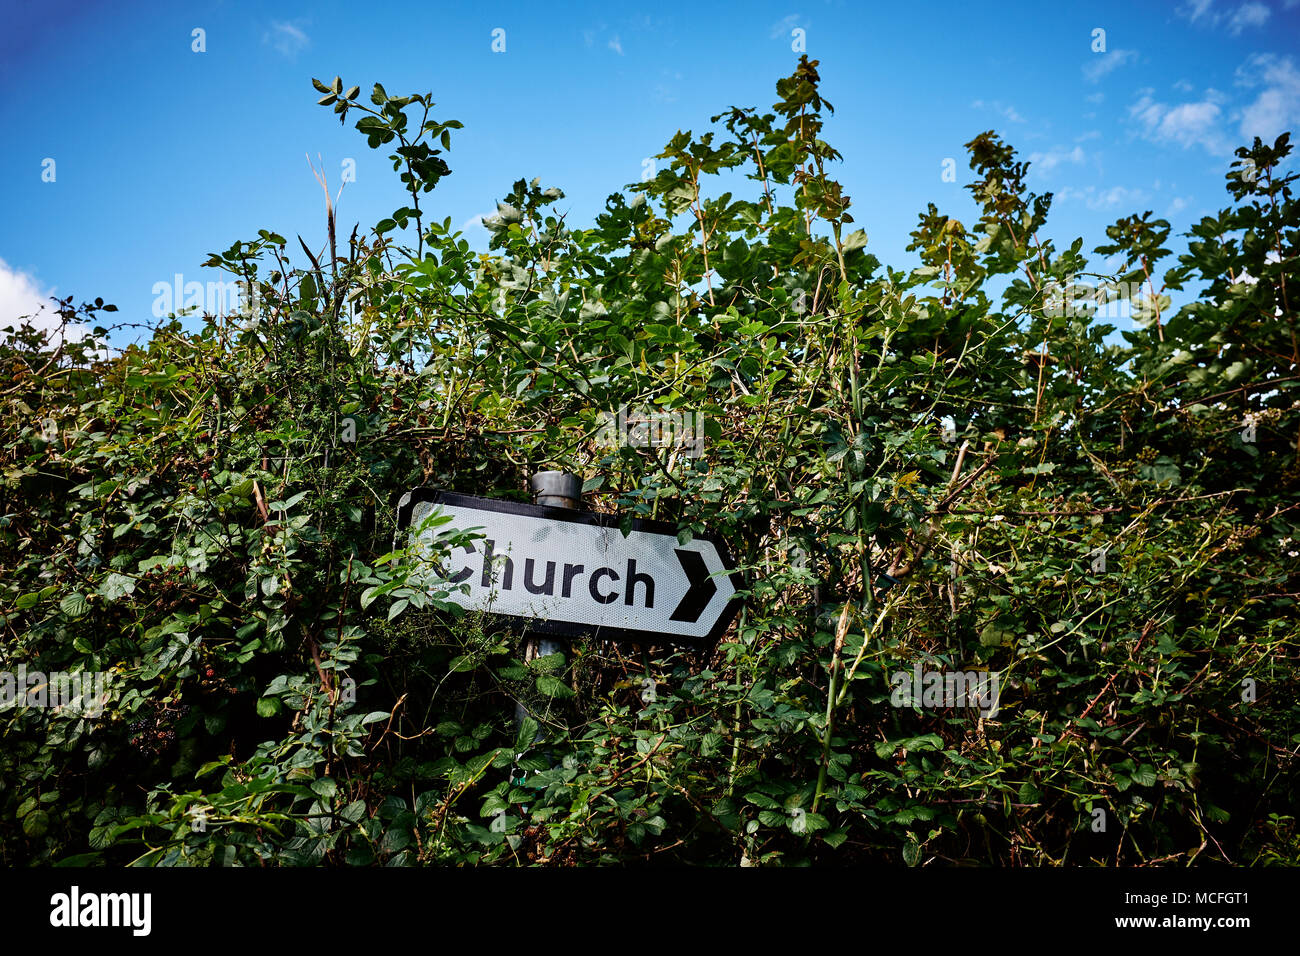 A church signpost lost in an overgrown country hedge. - Stock Image